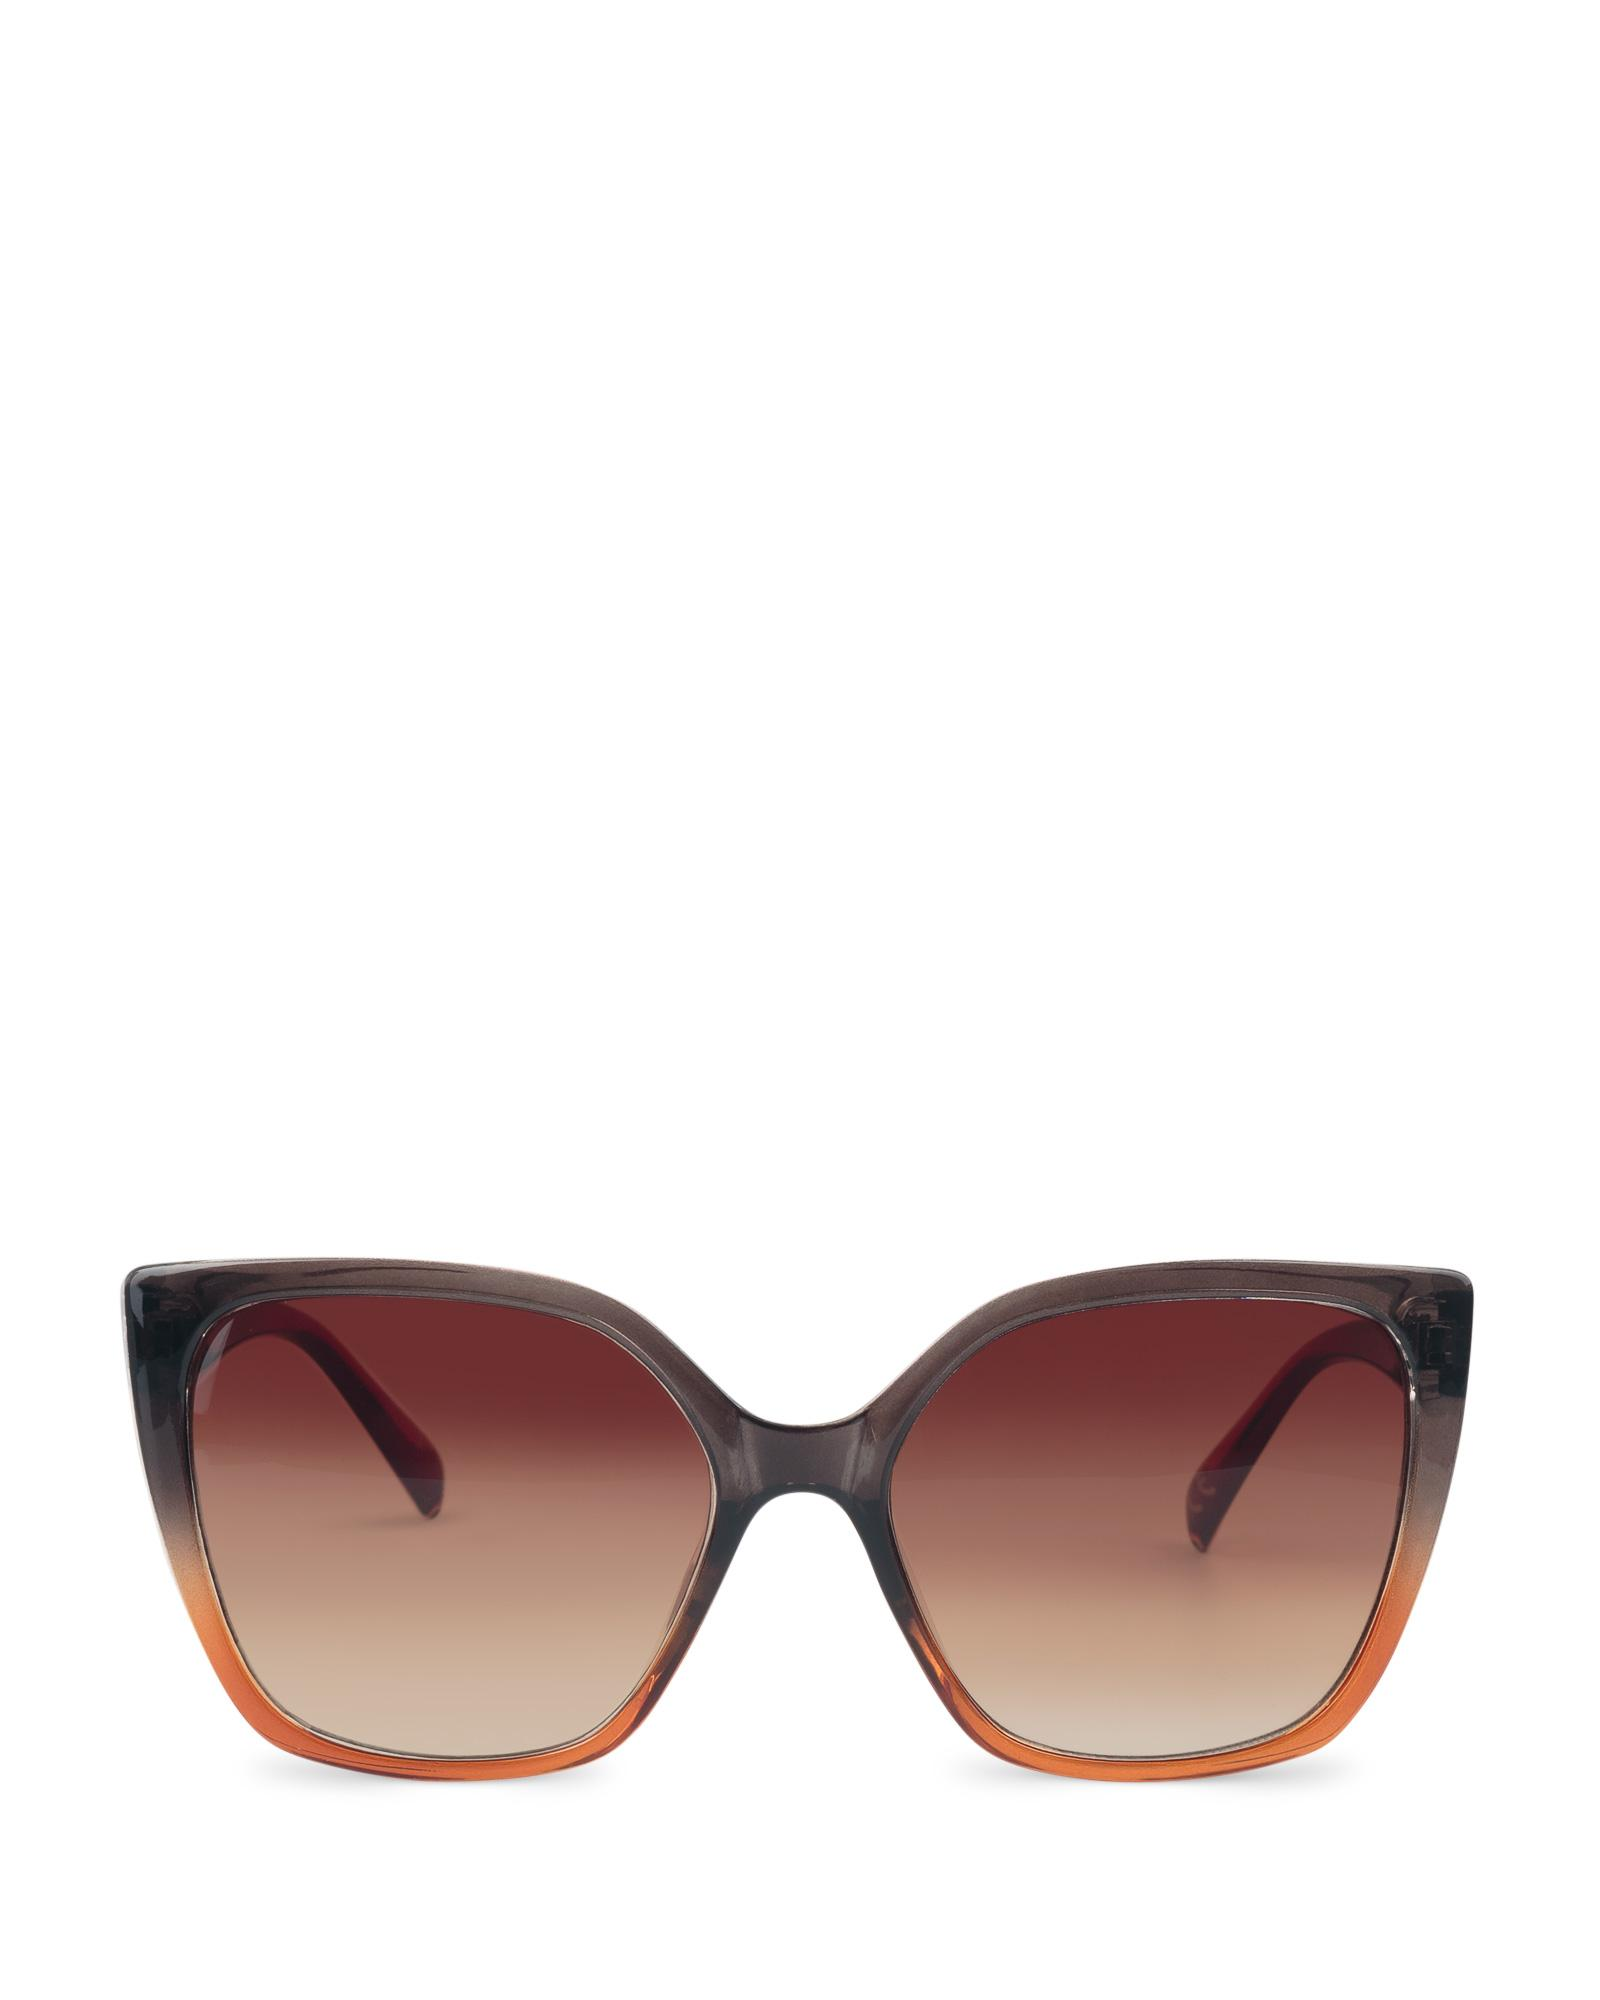 64d0803dc6 Lyst - Oliver Bonas Angled Square Ombre Brown Sunglasses in Brown